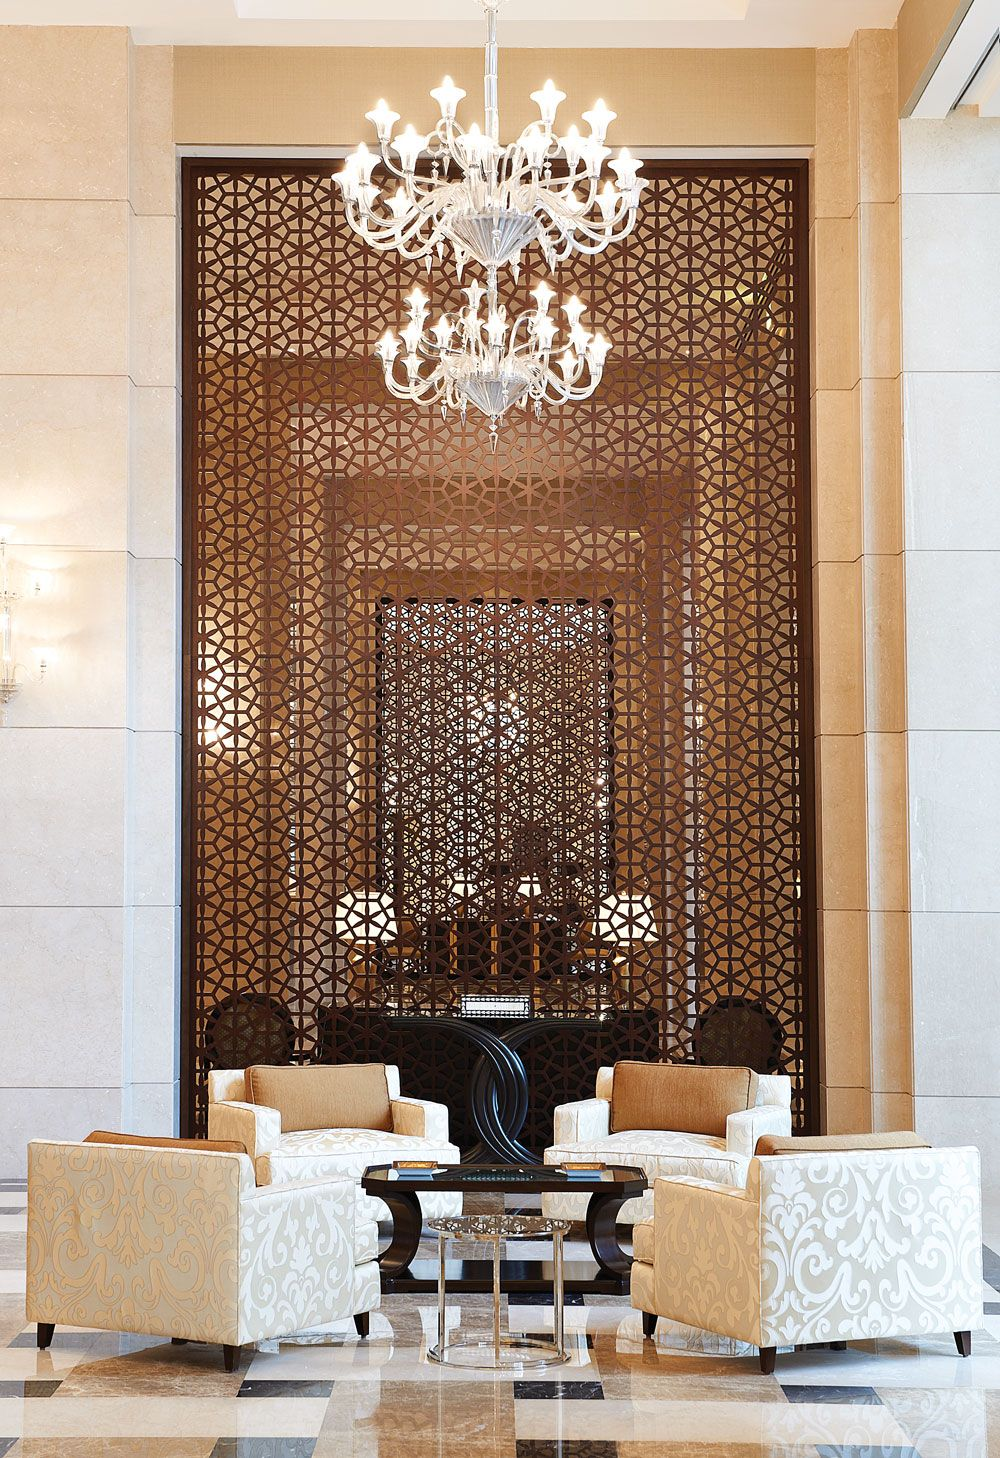 Lebanese restaurant interior design restaurants with